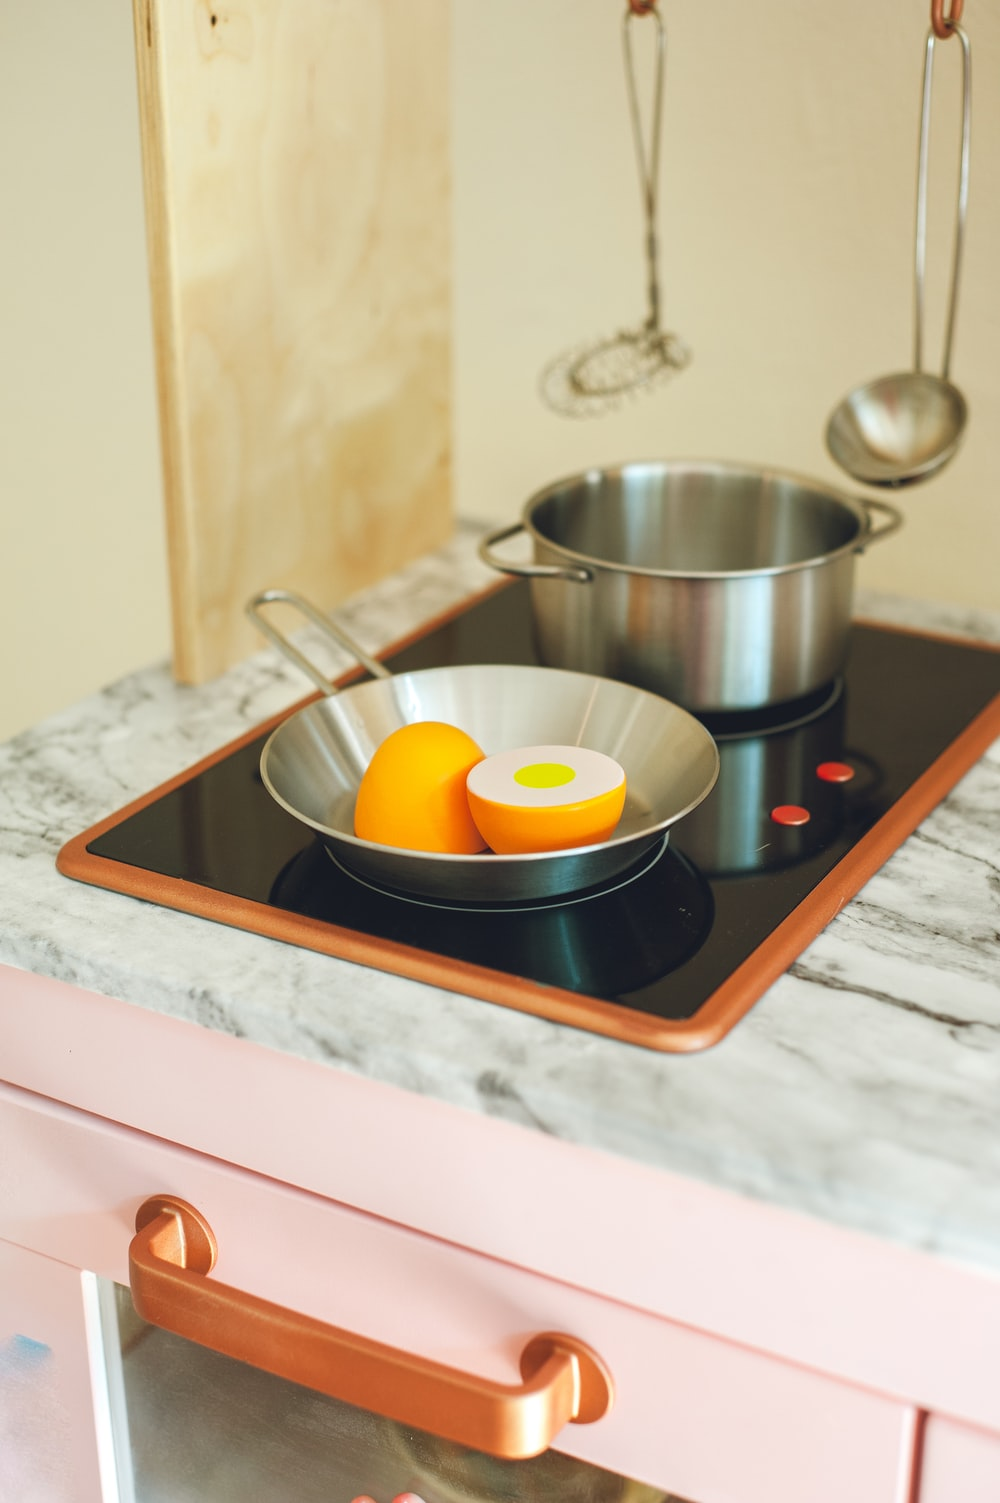 stainless steel bowl on white ceramic tray